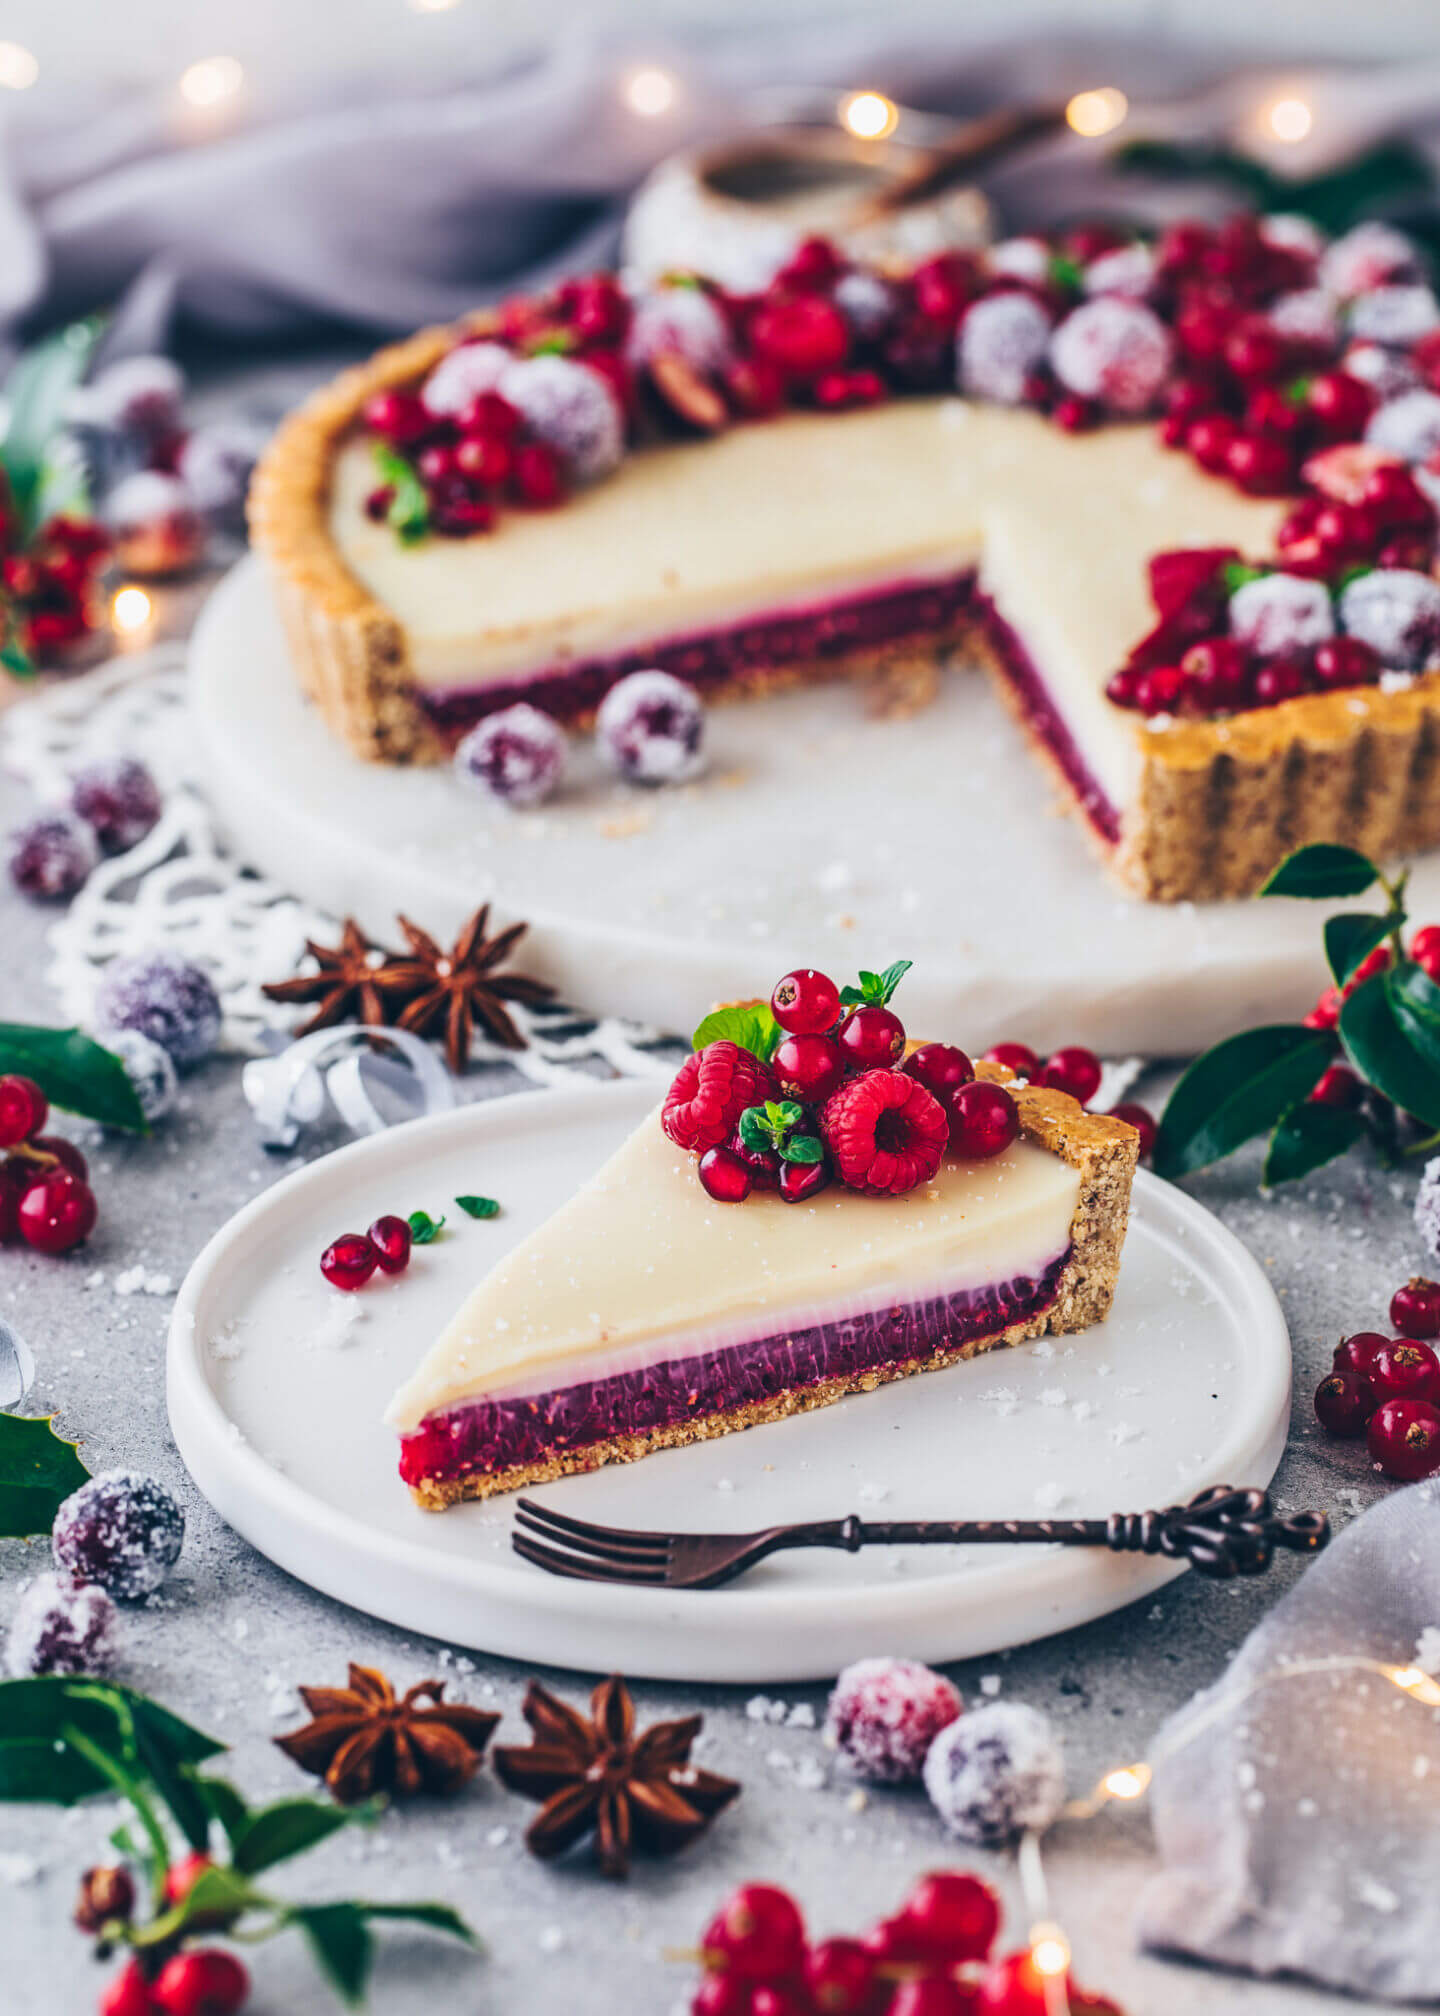 White Chocolate Tart with Raspberry filling